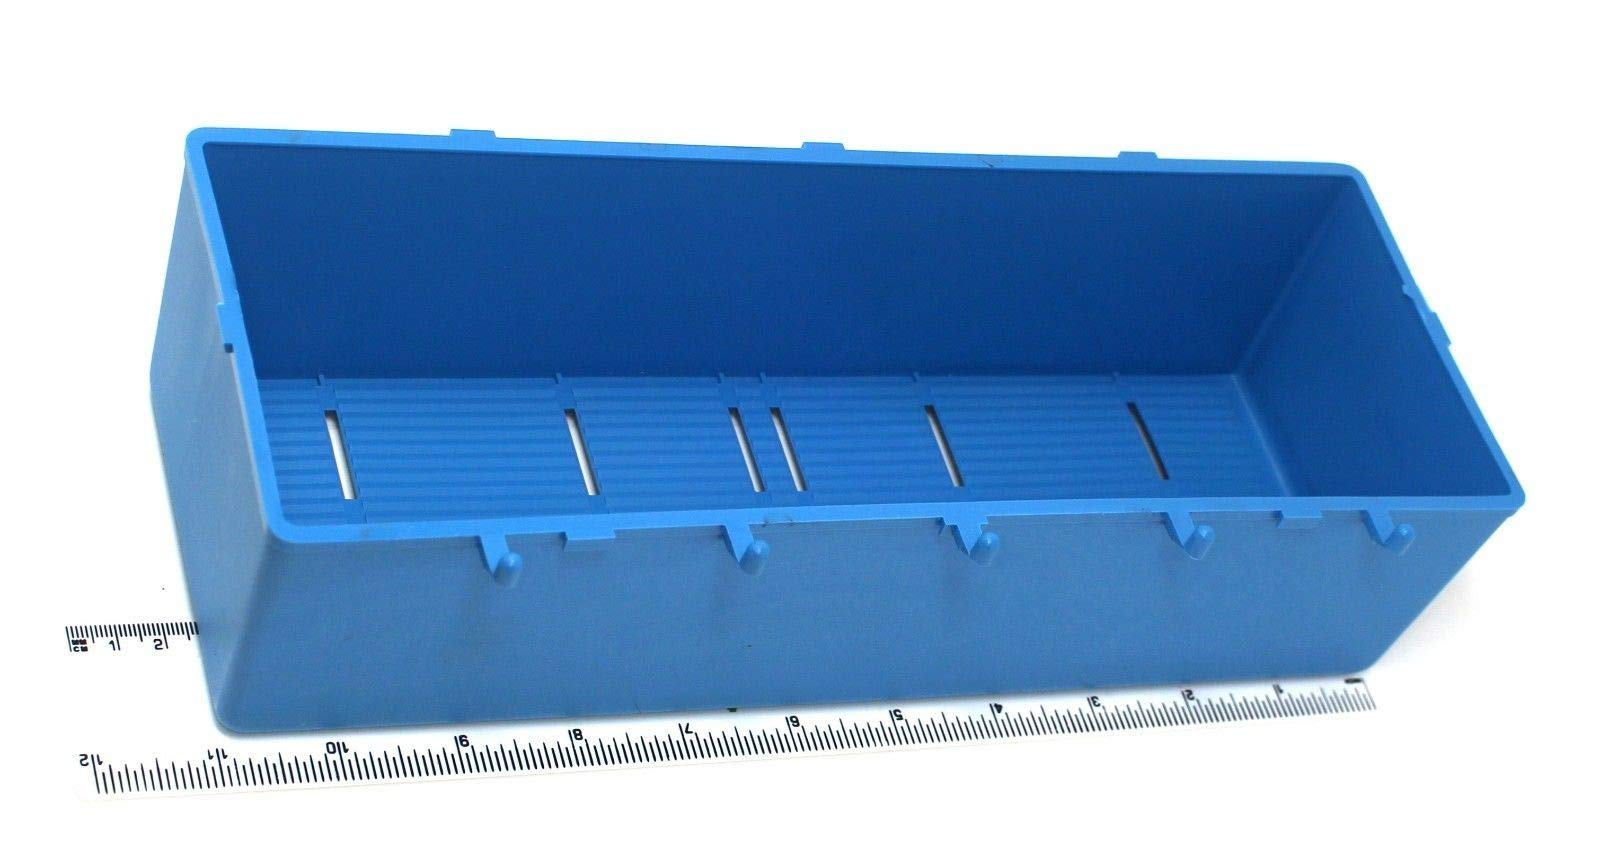 Plastic Blue Parts Storage Bins Peg Tool Board Workbench PEGBOARD NOT INCLUDED by Unknown (Image #1)